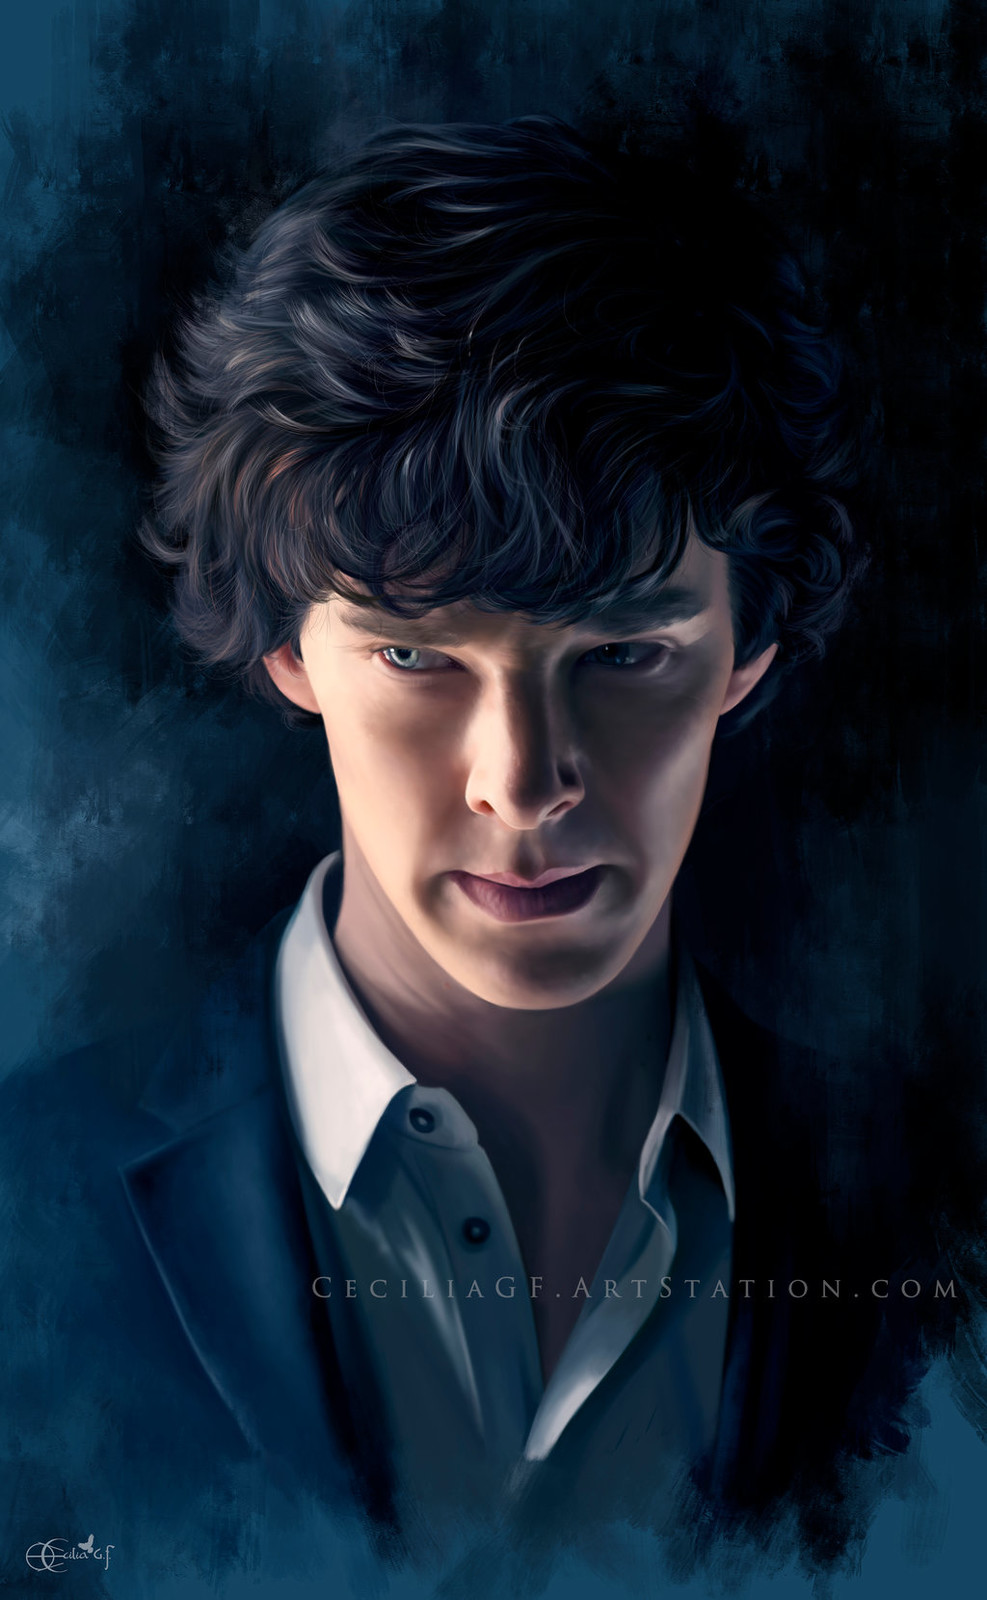 I'm not obsessed with Sherlock Holmes